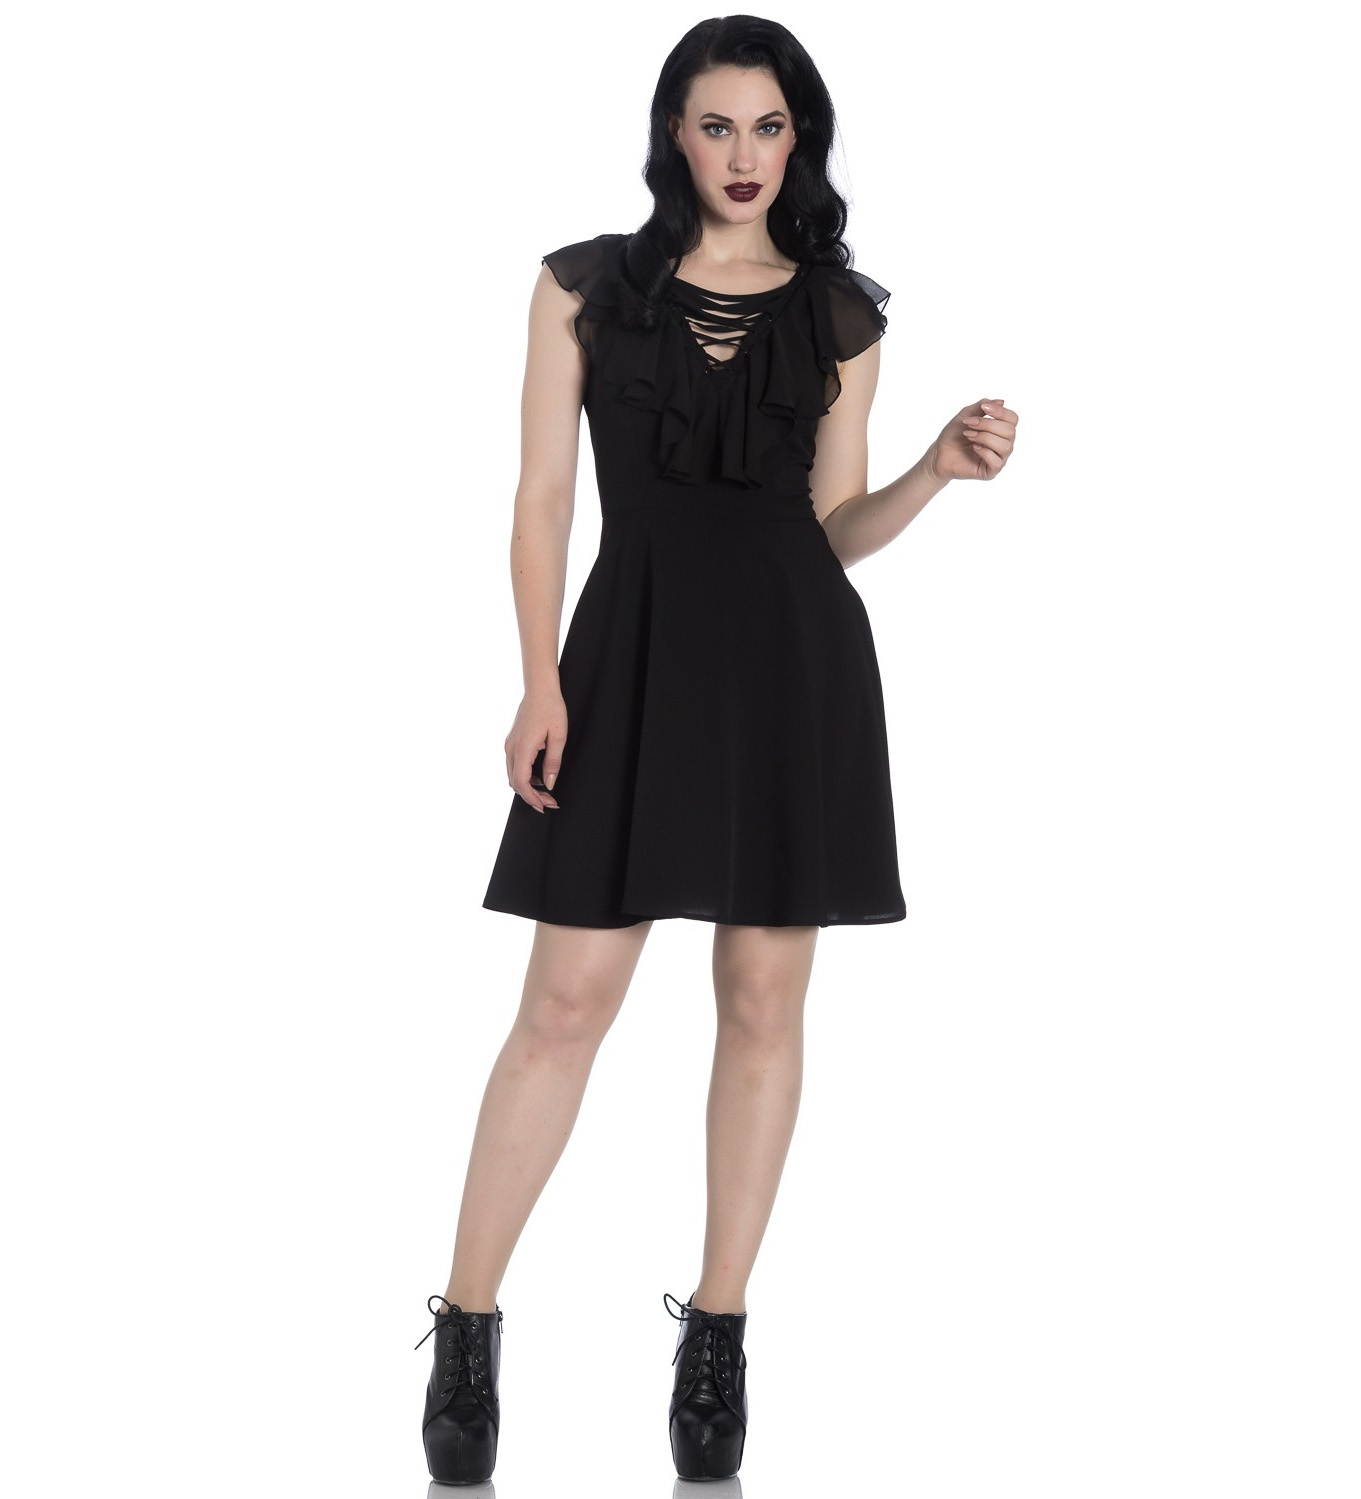 Hell-Bunny-Floaty-Lace-Up-Goth-Witch-Punk-Mini-Dress-ONYX-Black-All-Sizes thumbnail 3